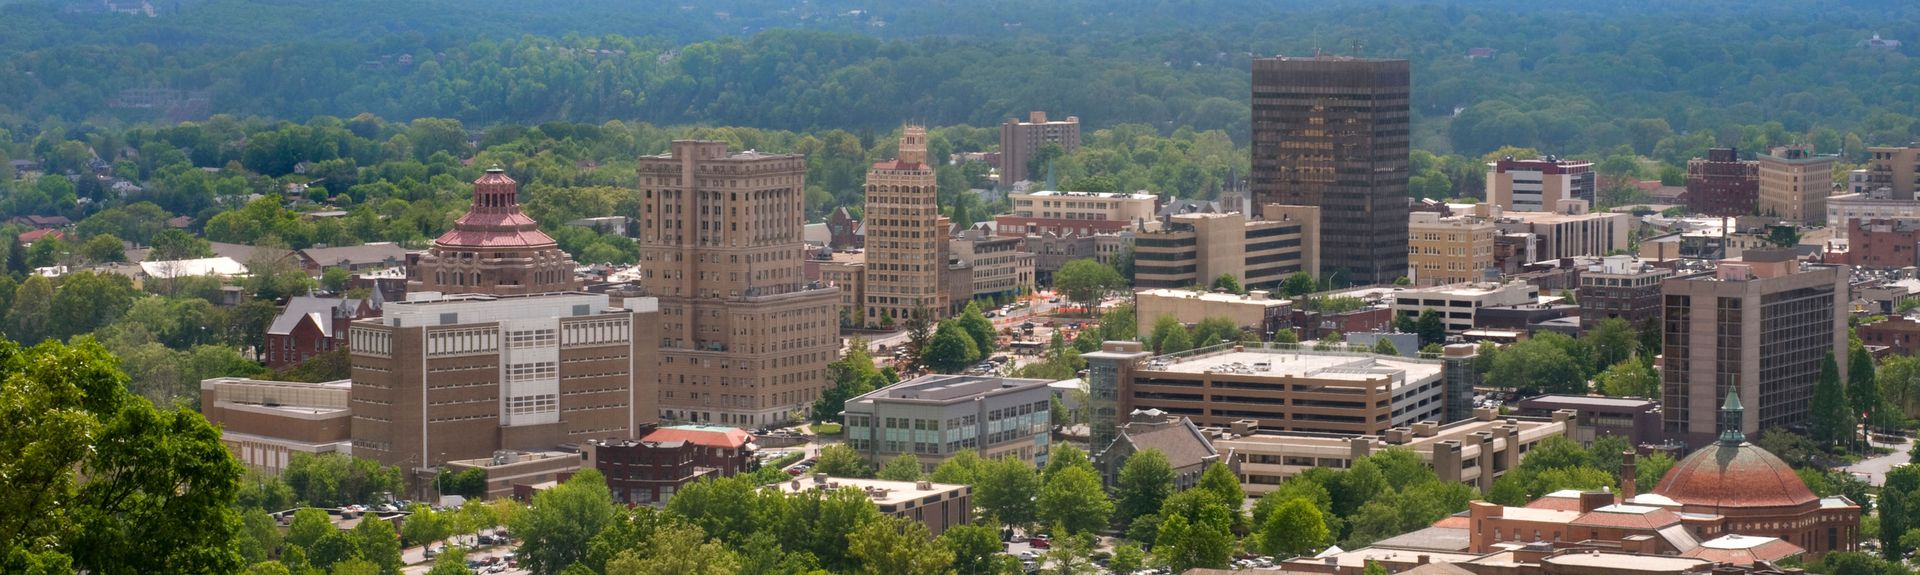 Downtown Asheville, Asheville, North Carolina, United States of America